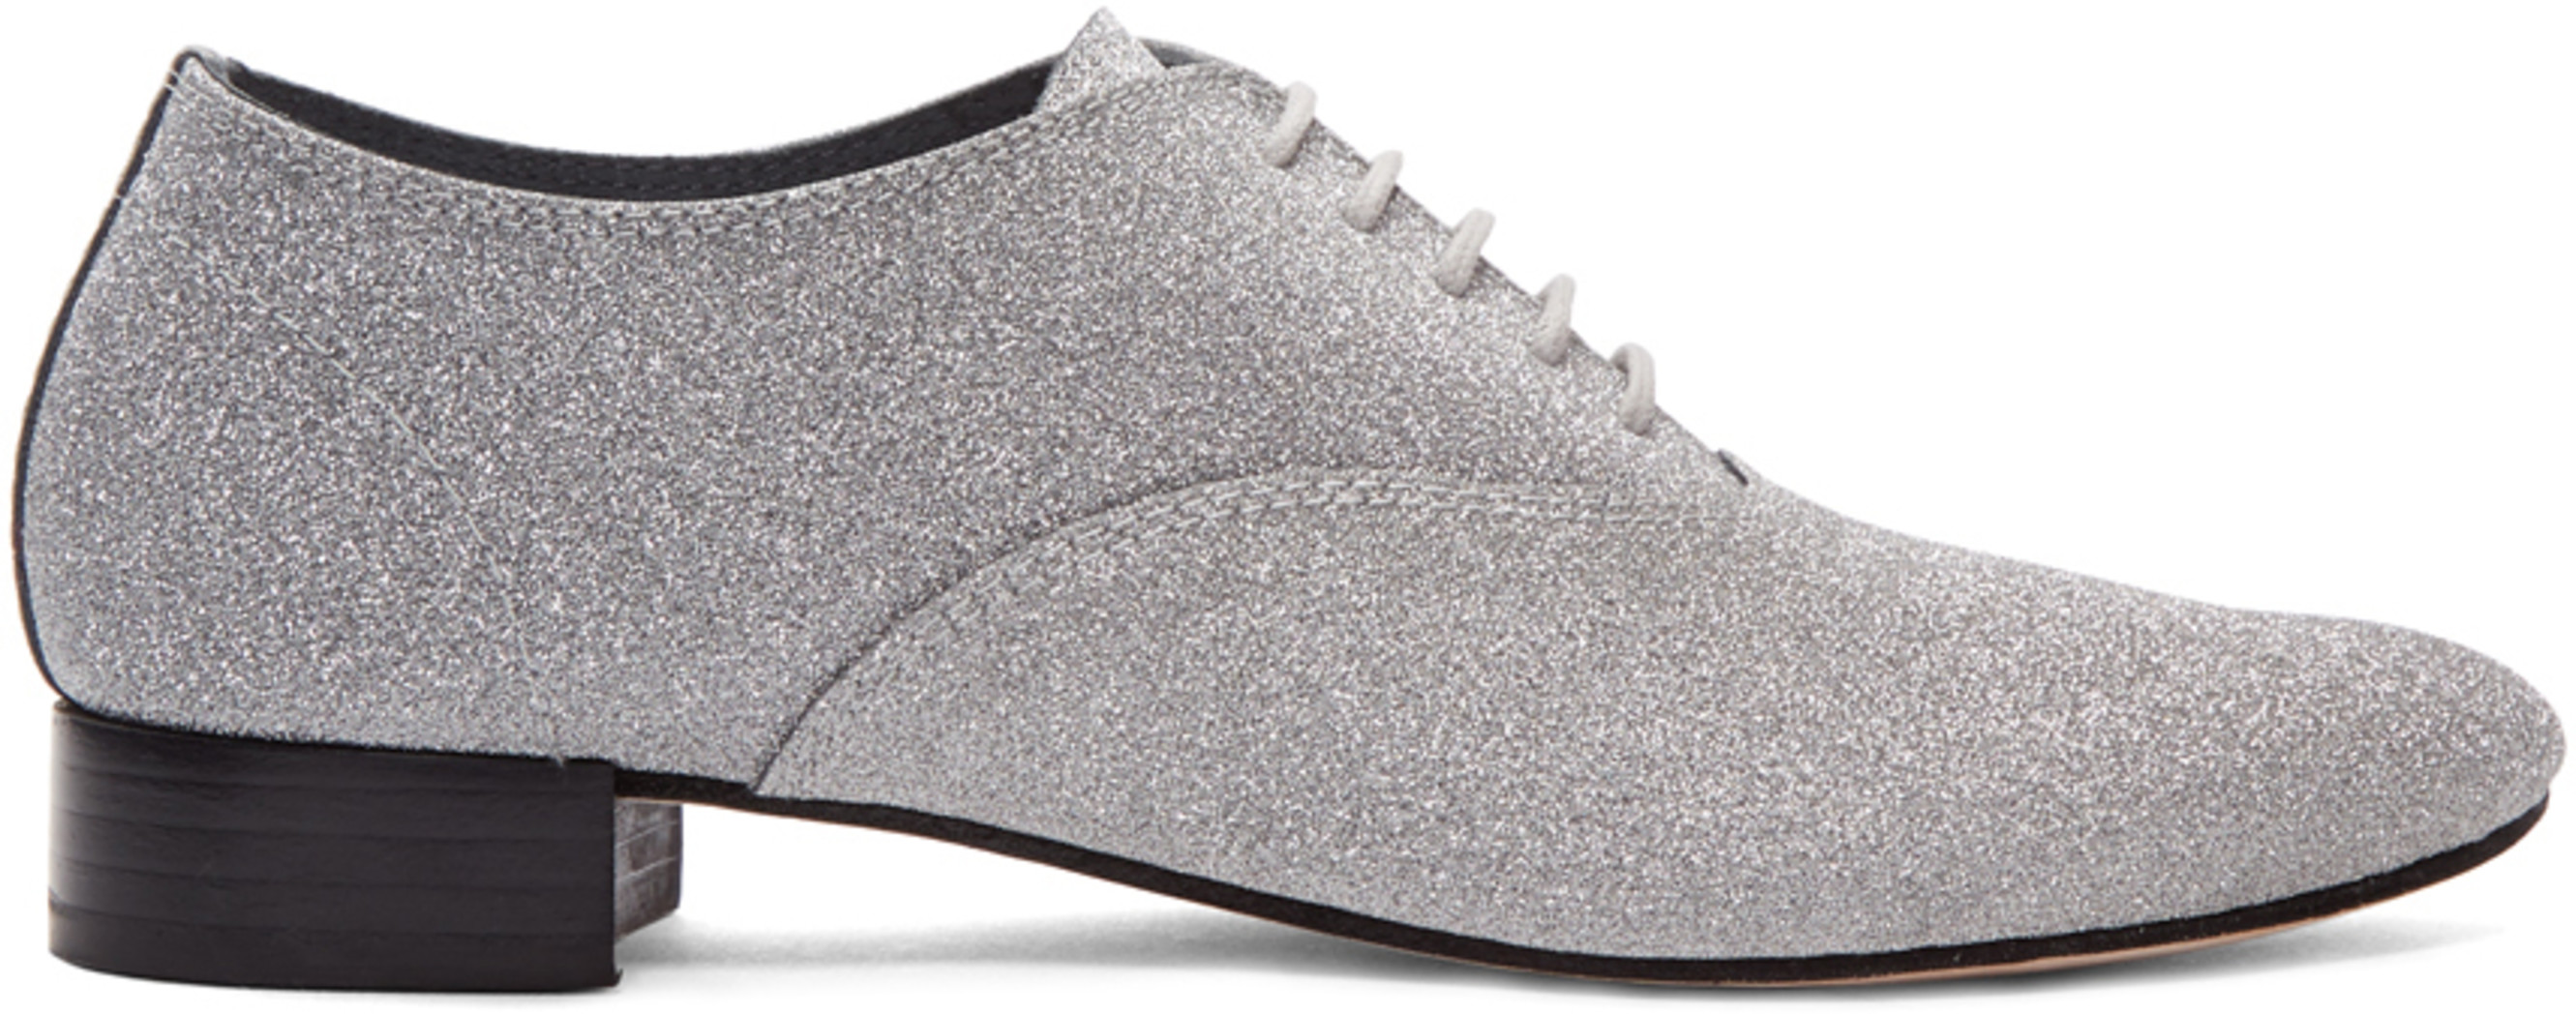 bce63767aa77 Repetto shoes for Women